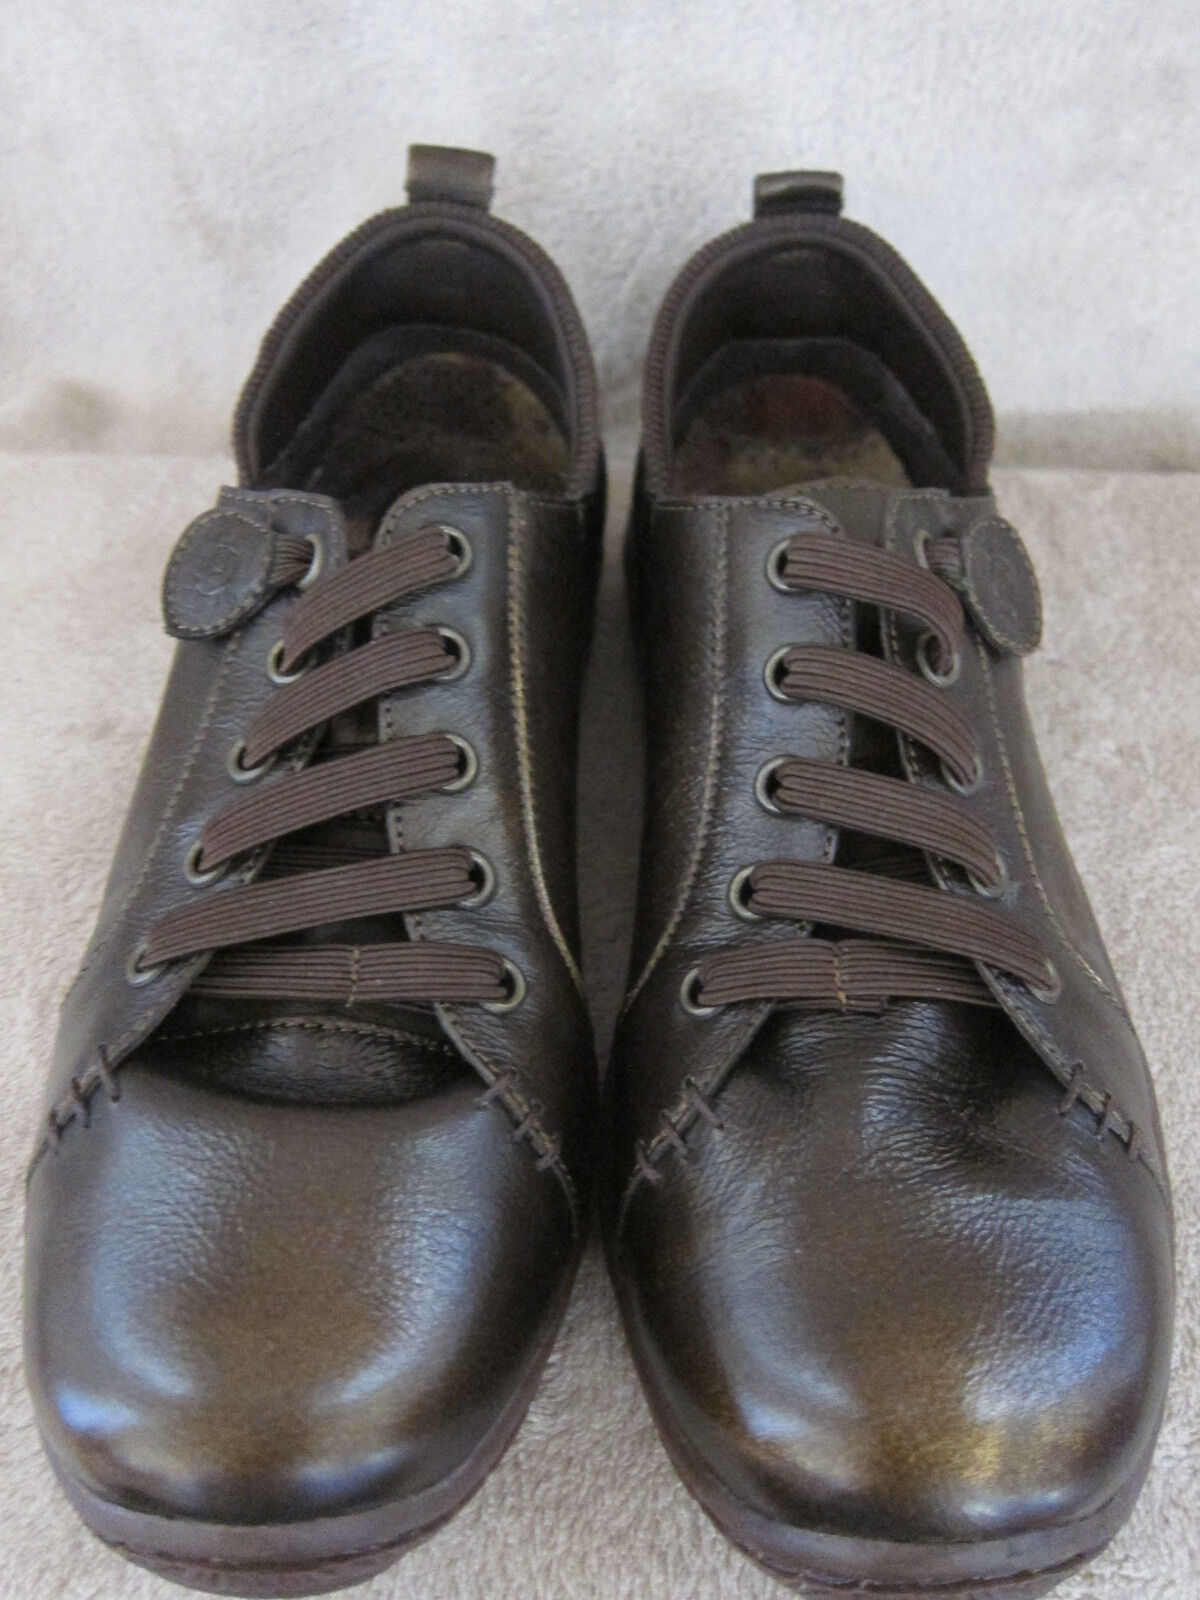 BORN Metallic Althea D11637 Damenschuhe Whiskey Metallic BORN Leder Schuhes US 8.5 M EUR 40 NWB 6d0772